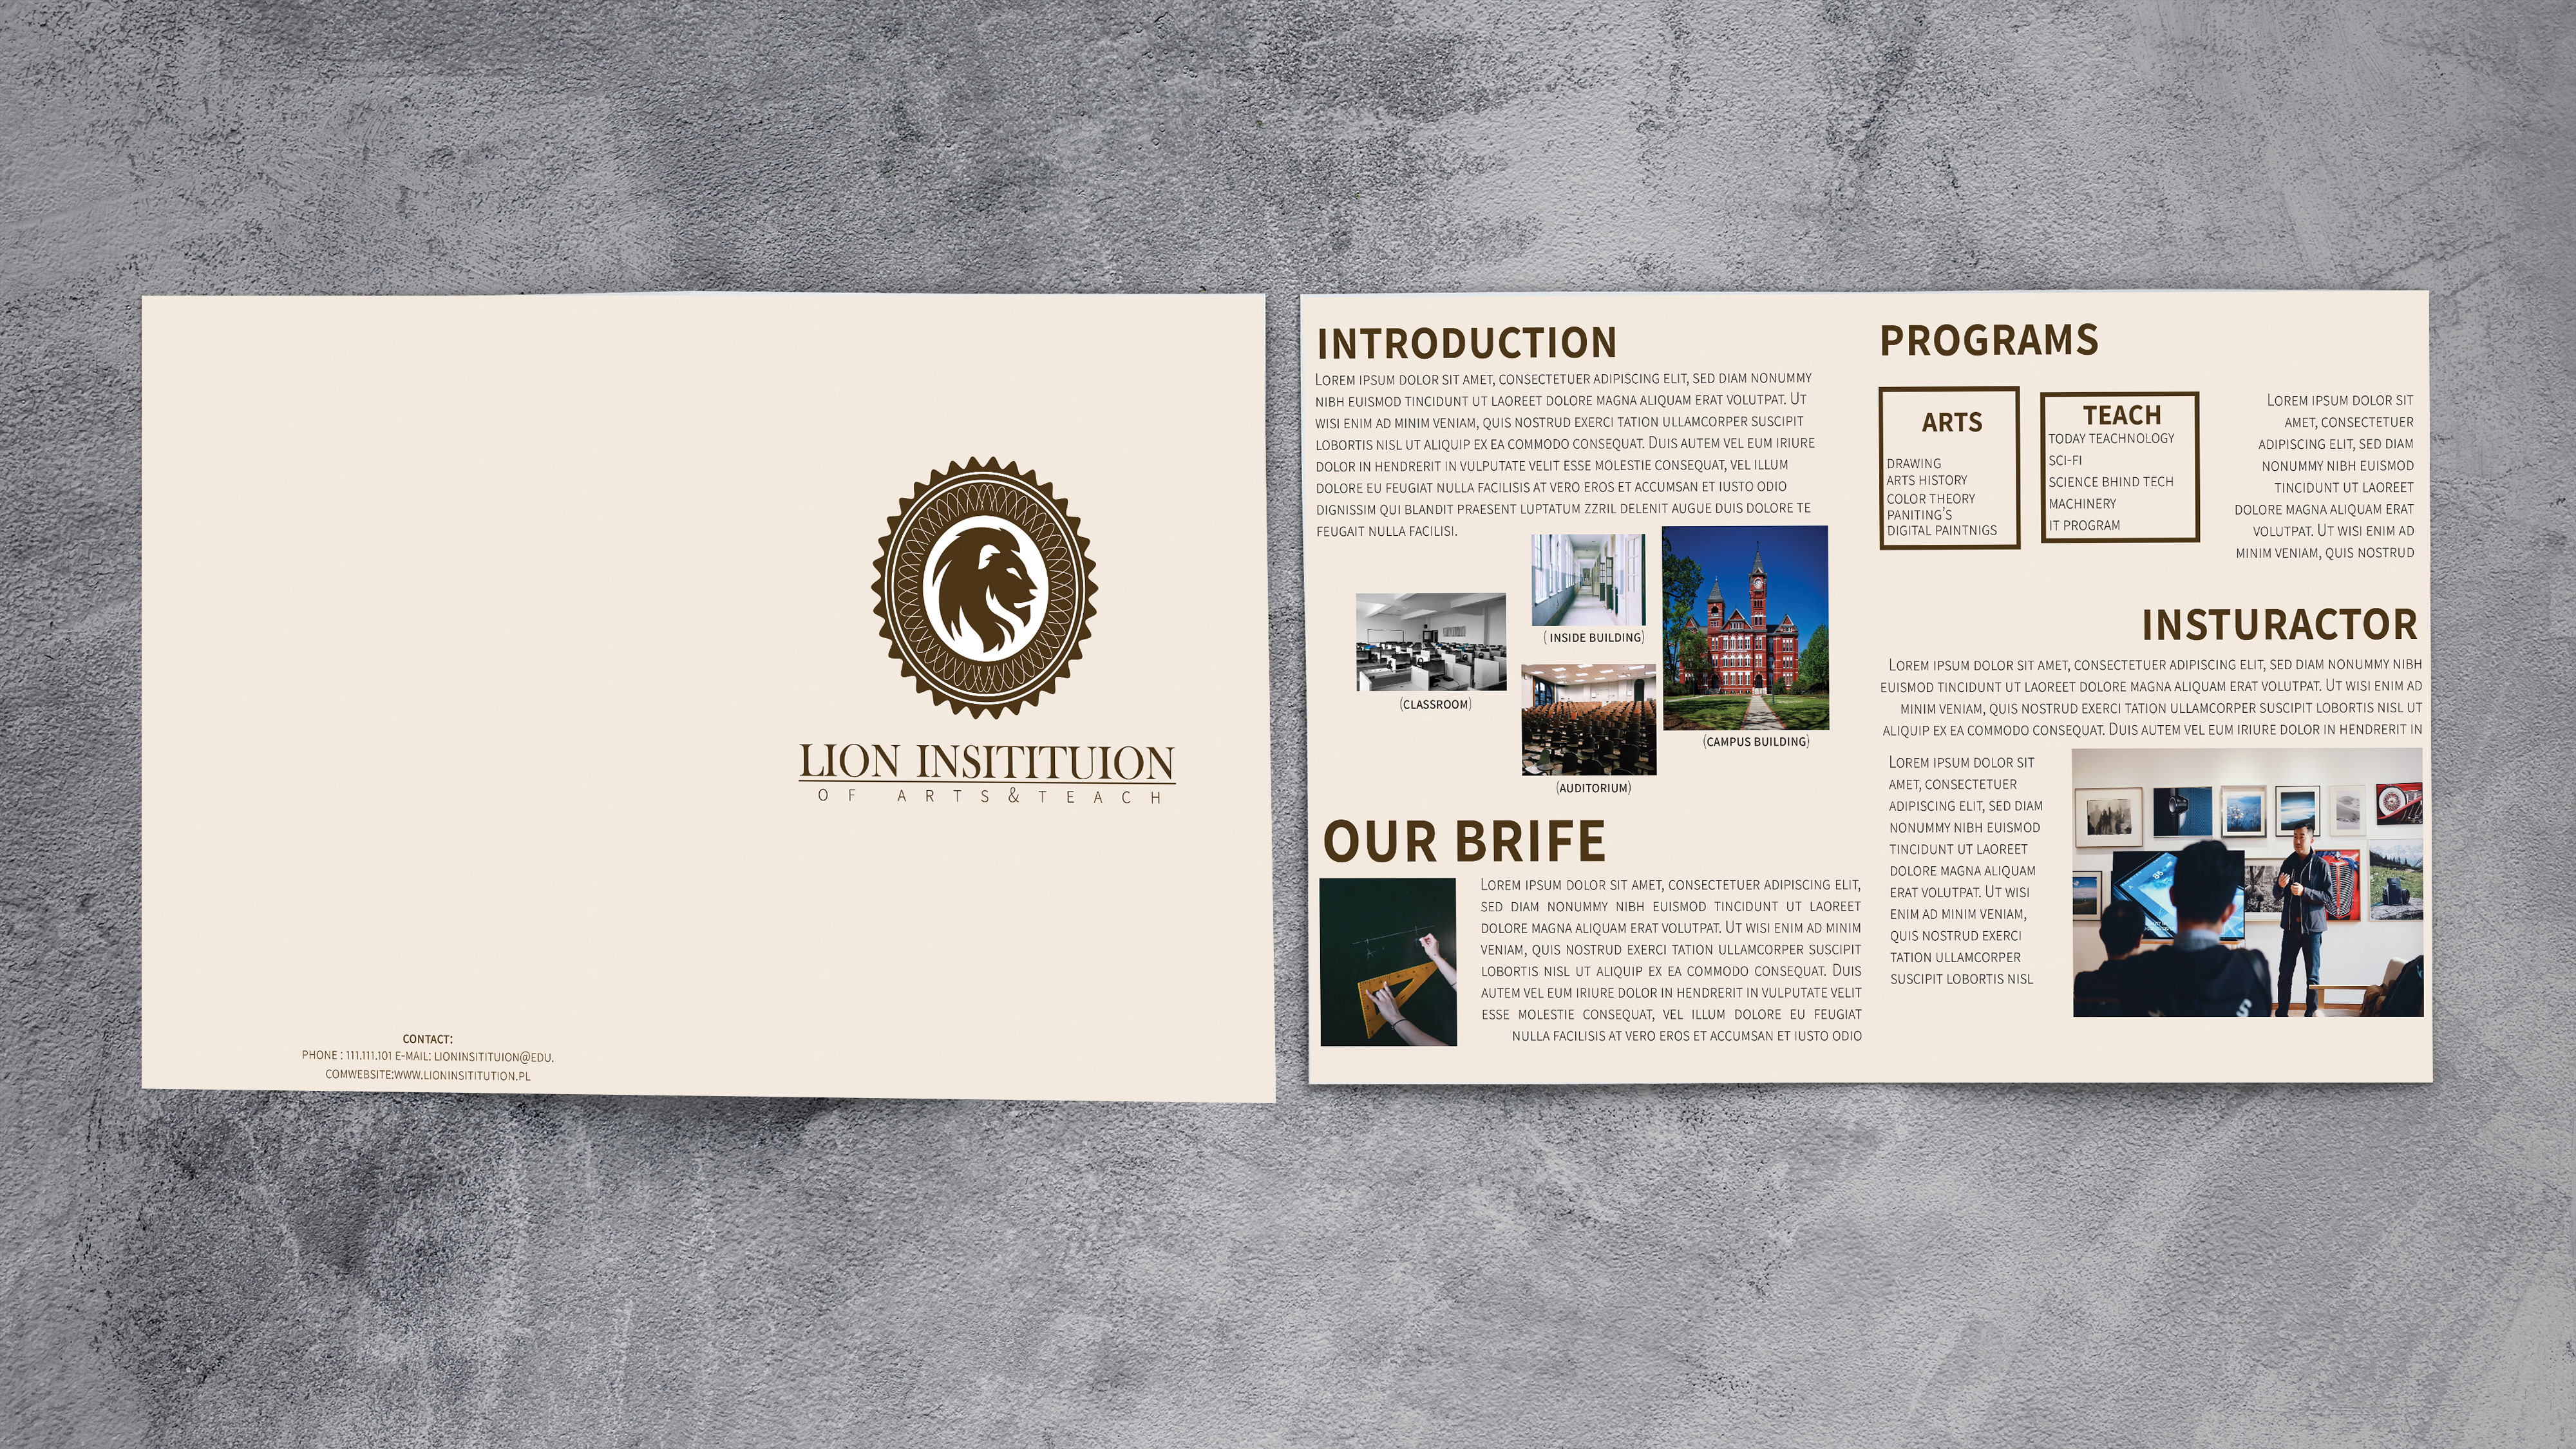 Pdf Invoice Projects Photos Videos Logos Illustrations And Branding On Behance